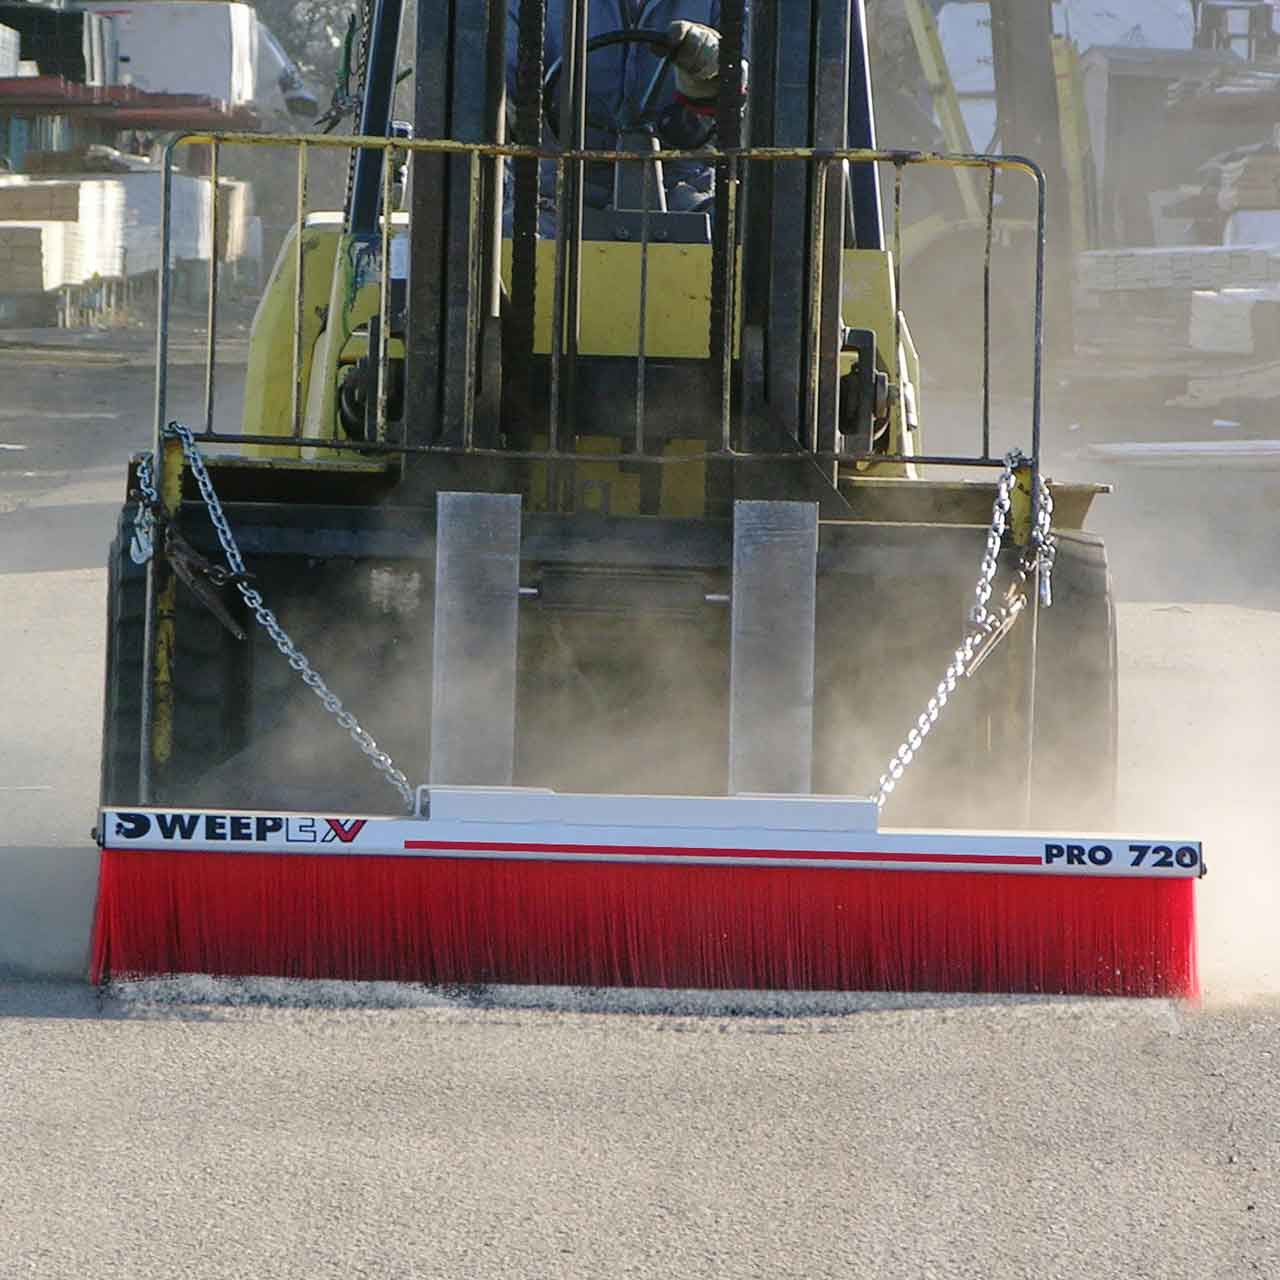 Forklift Mounted Broom - Pro Series In Action!